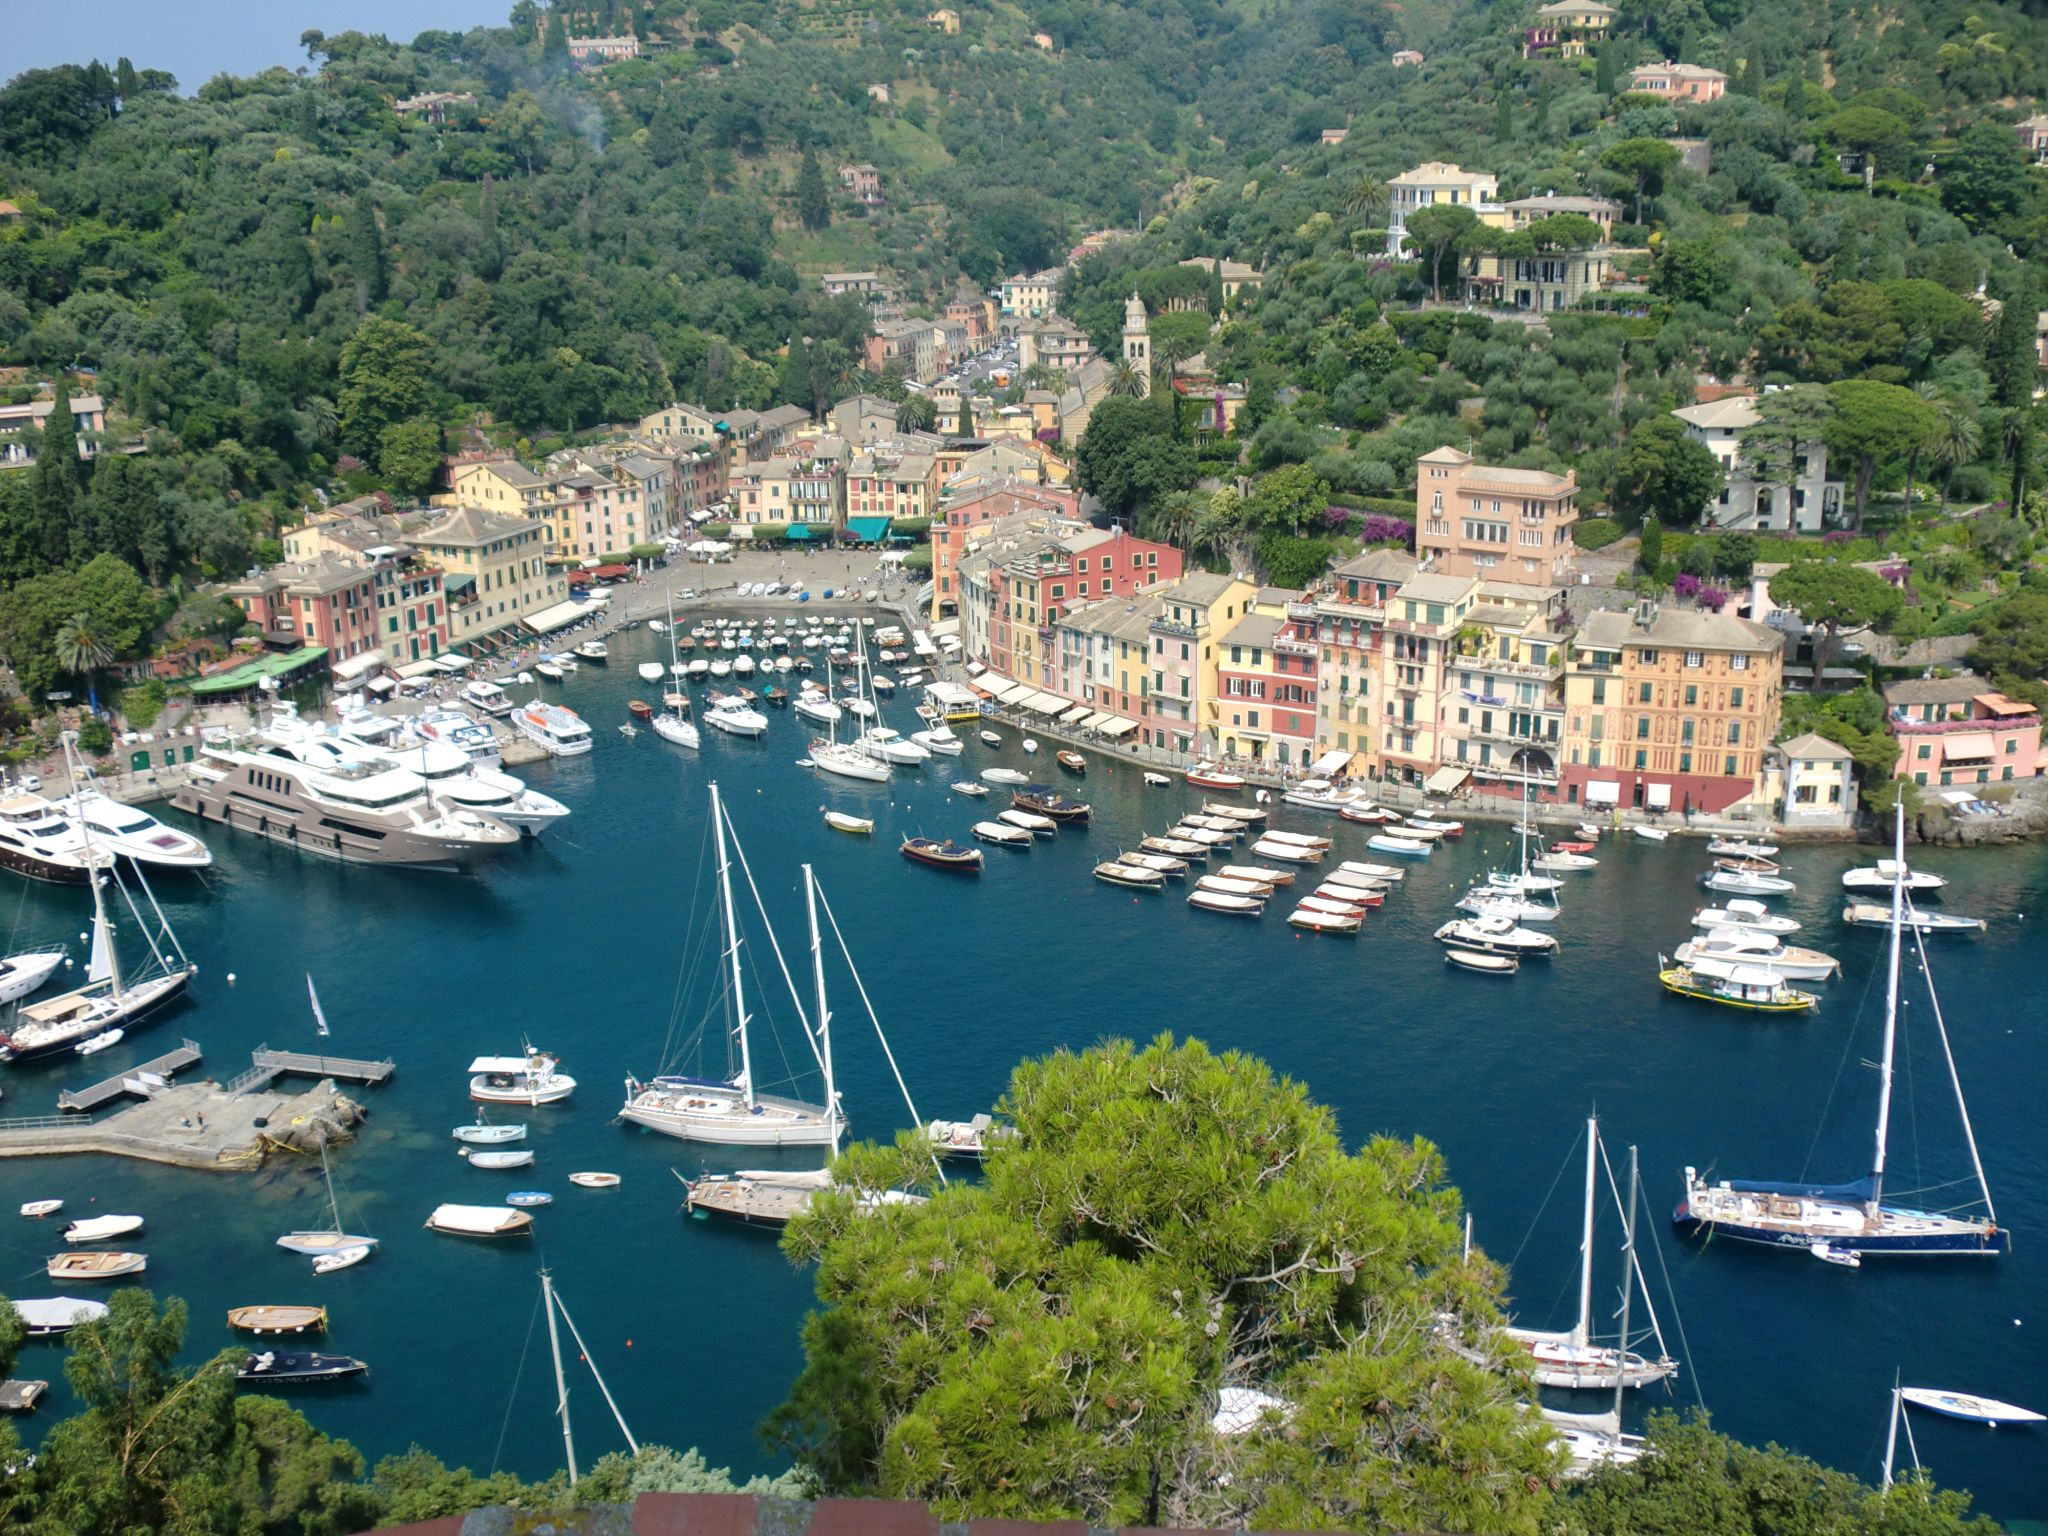 Portofino 44 - Portofino: a small pearl on the sea